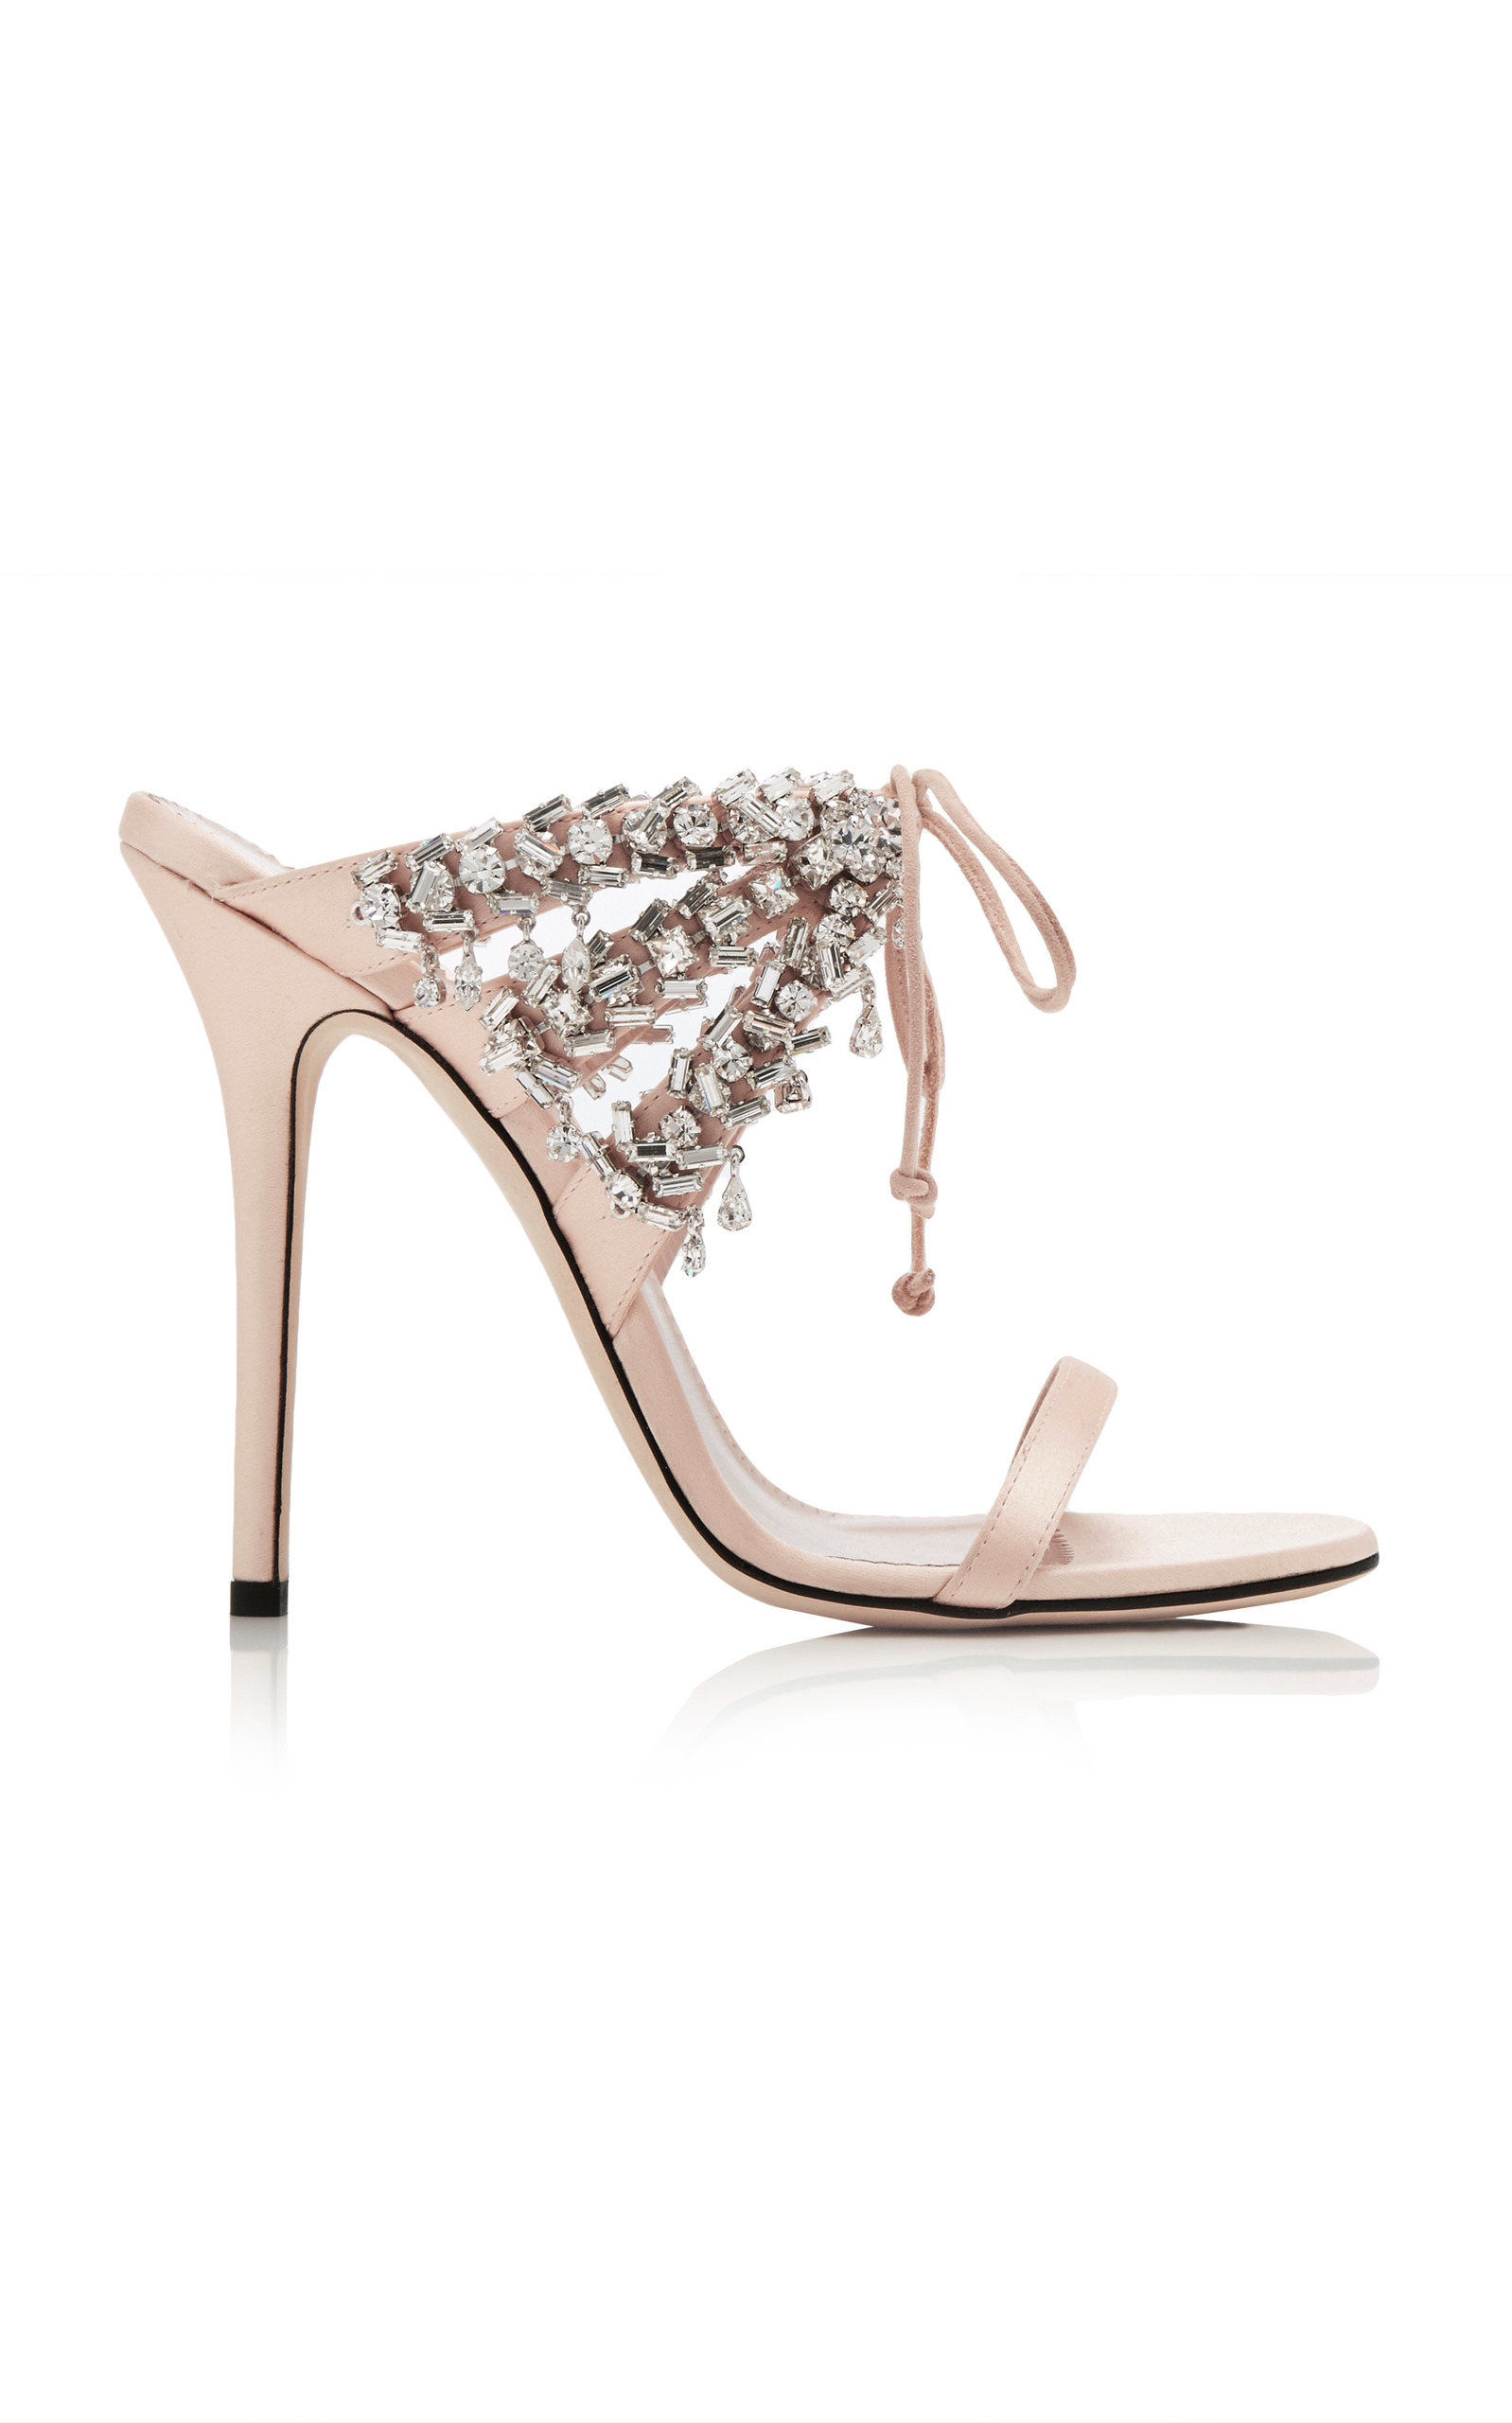 Giuseppe Zanotti Satin mule with crystals MADELYN JgRblS